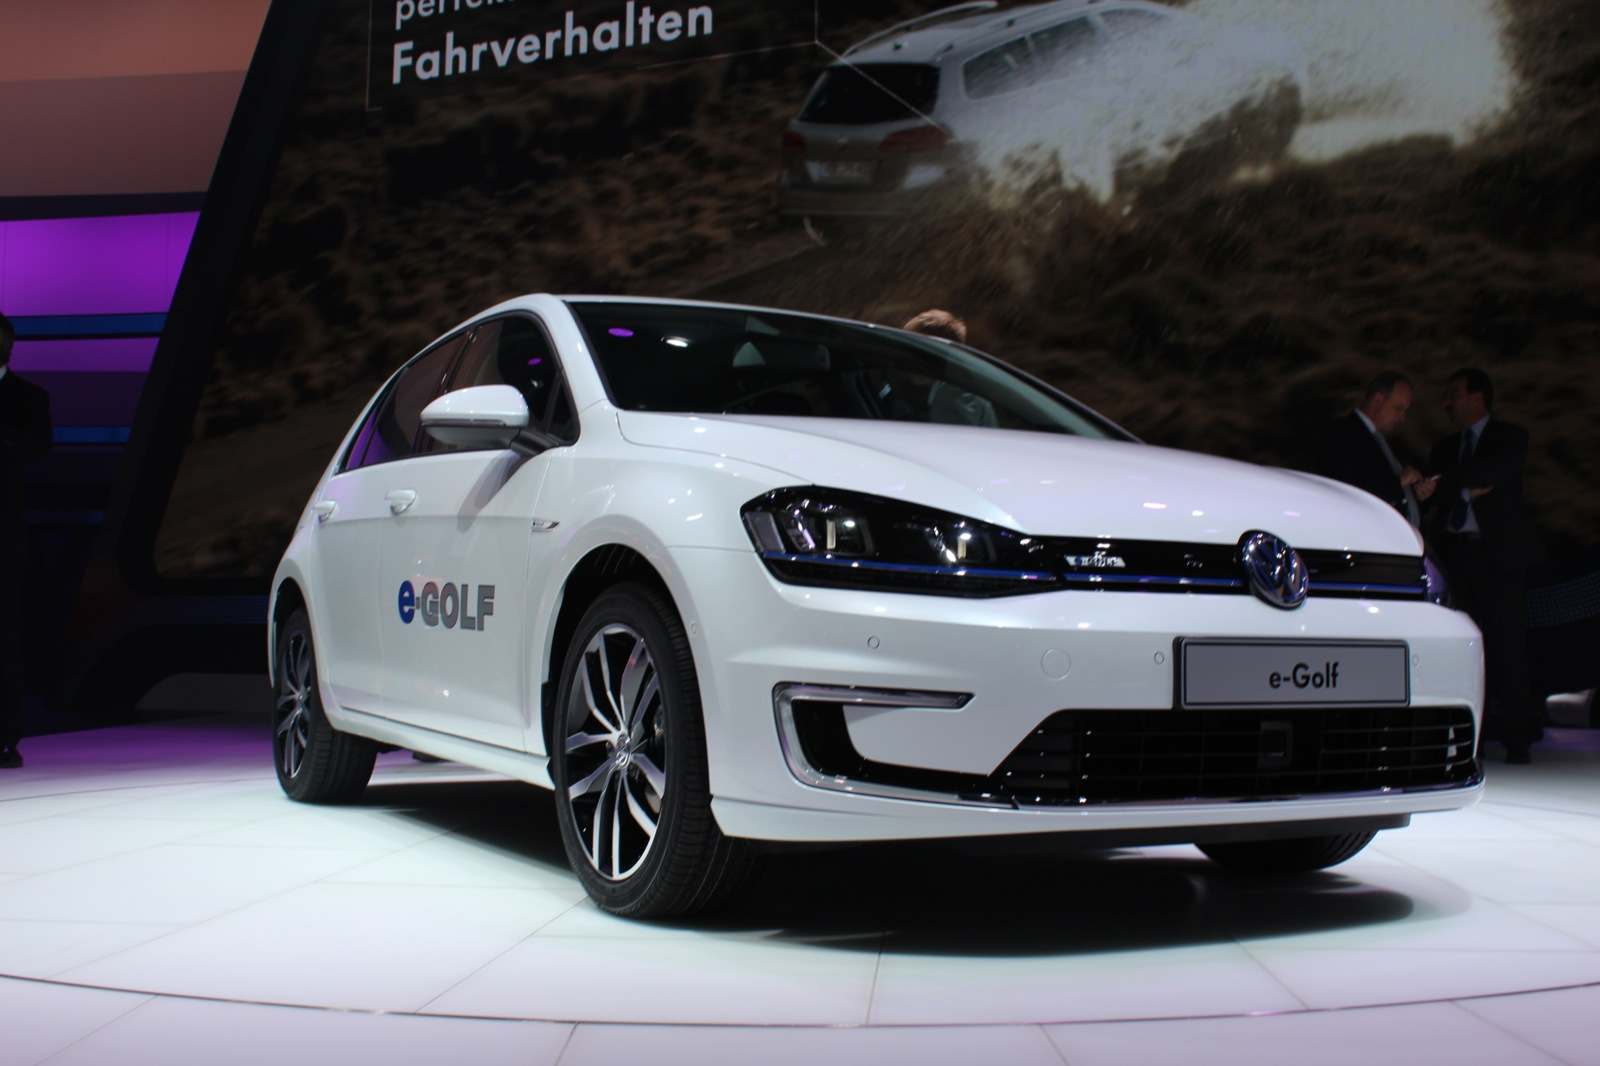 electric motor manufacturer volkswagen e golf object oriented analysis and design diagrams will be the biggest car maker in 2018